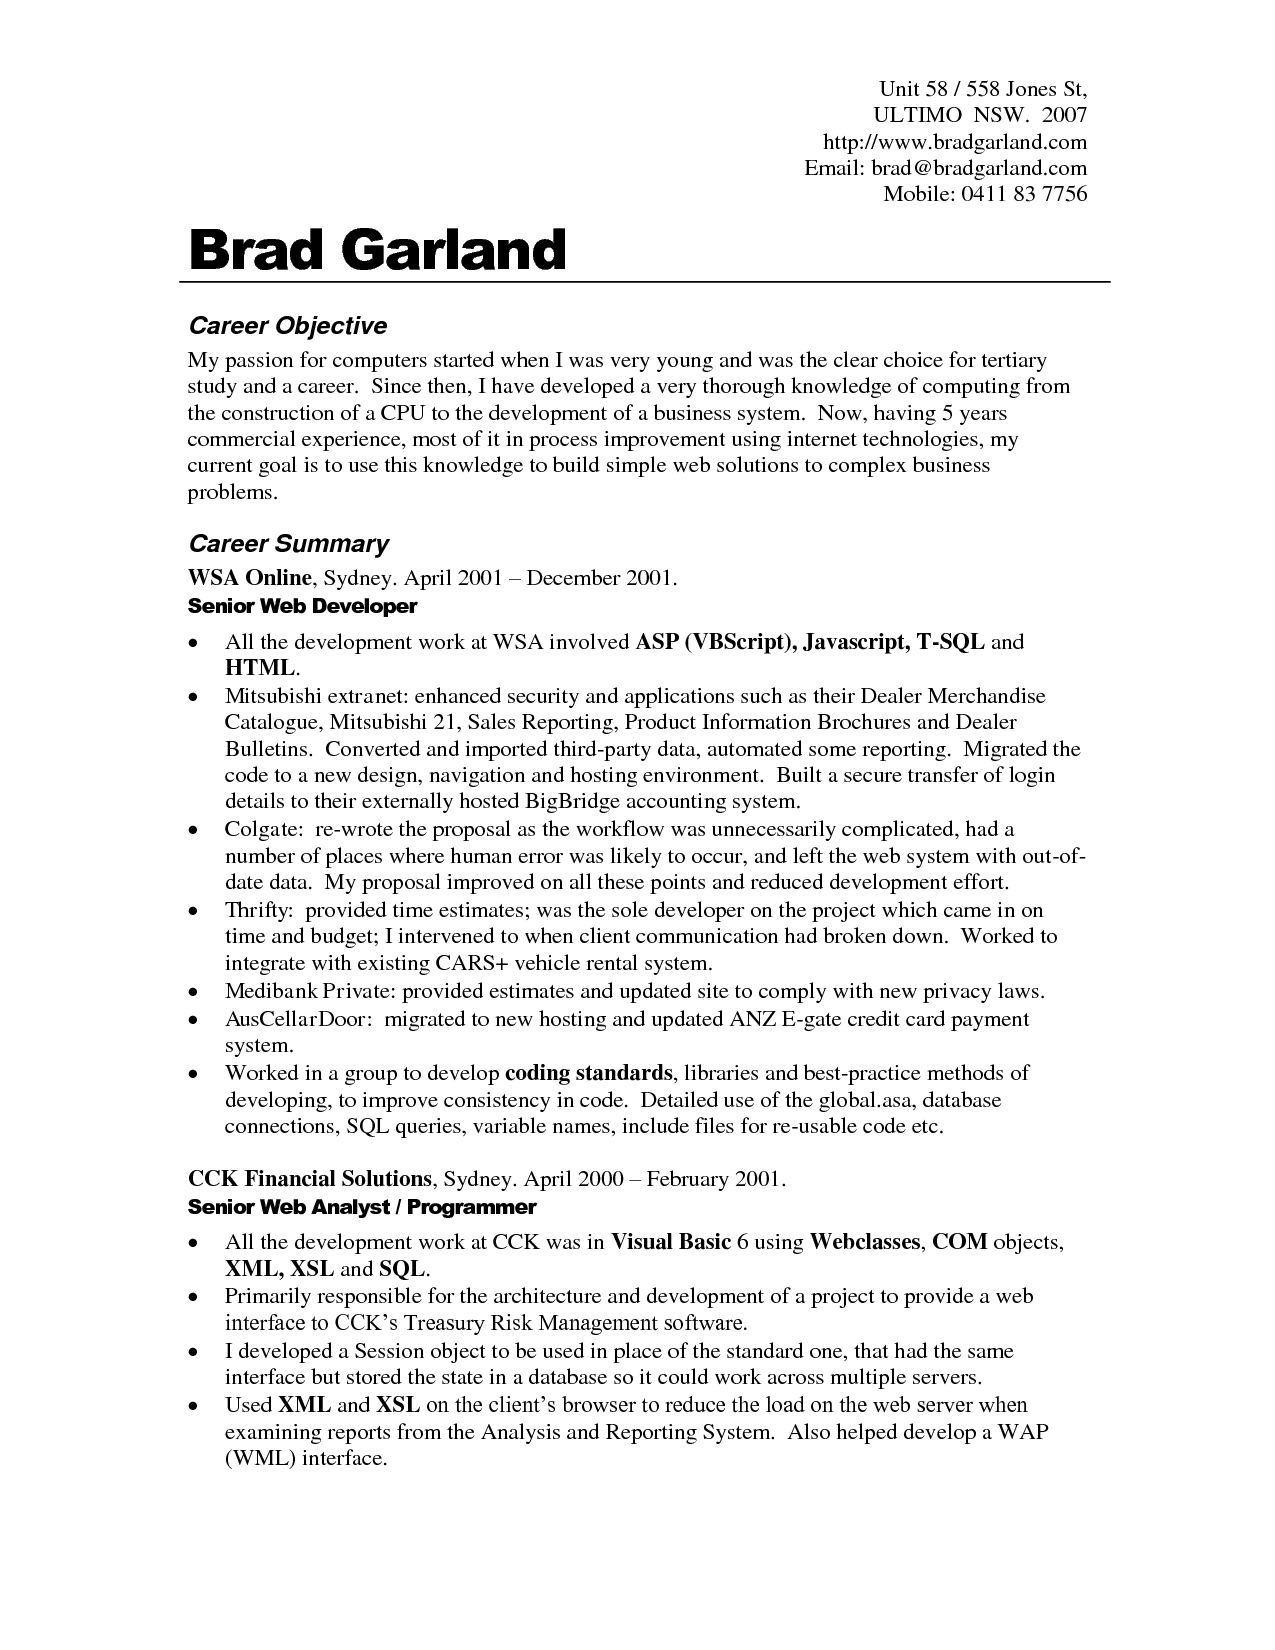 Sample Resume Summary Statement Sample Resume Action Verbs For Lawyers Formatting Back Post